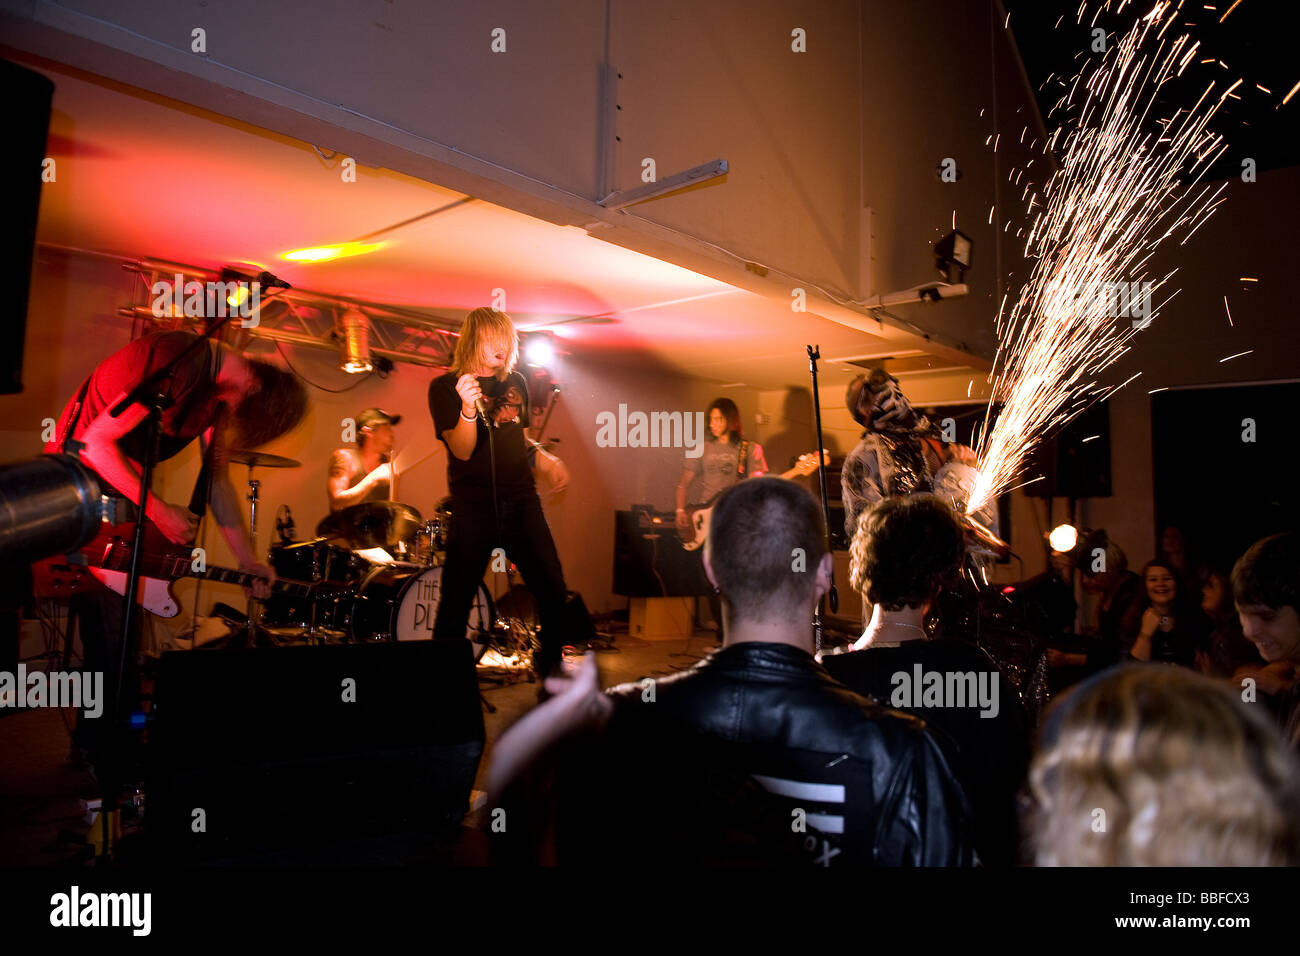 A rock band performing at Wynberg Sports Club Cape Town South Africa - Stock Image